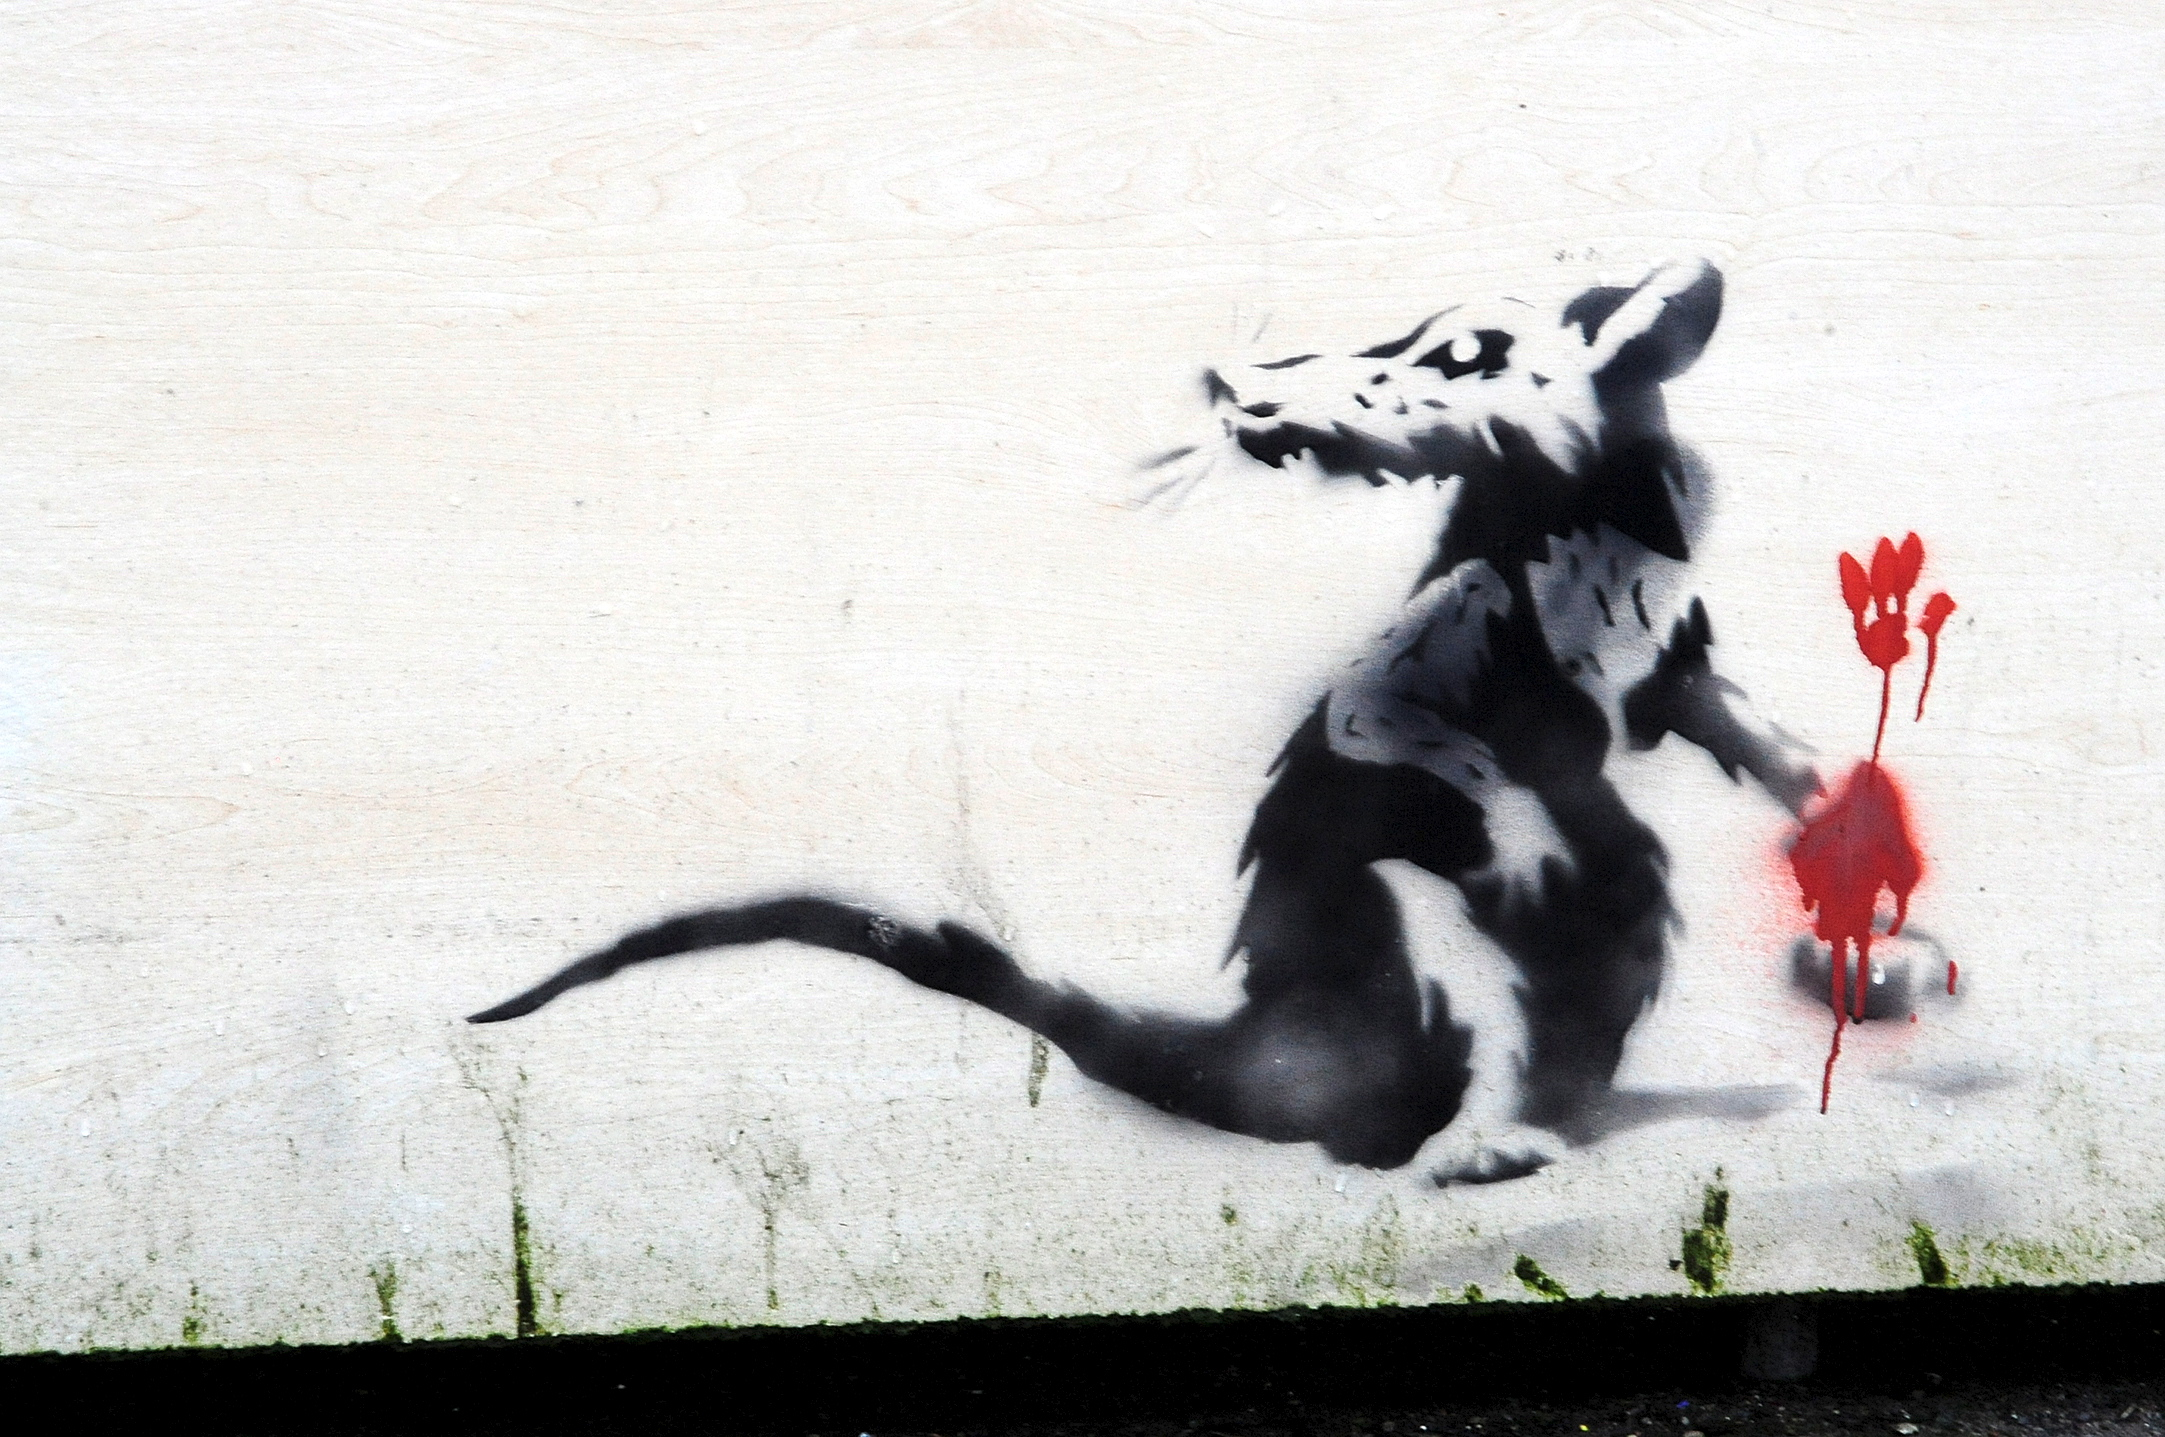 The Banksy-style rat graffiti that was spotted in Astley Bridge